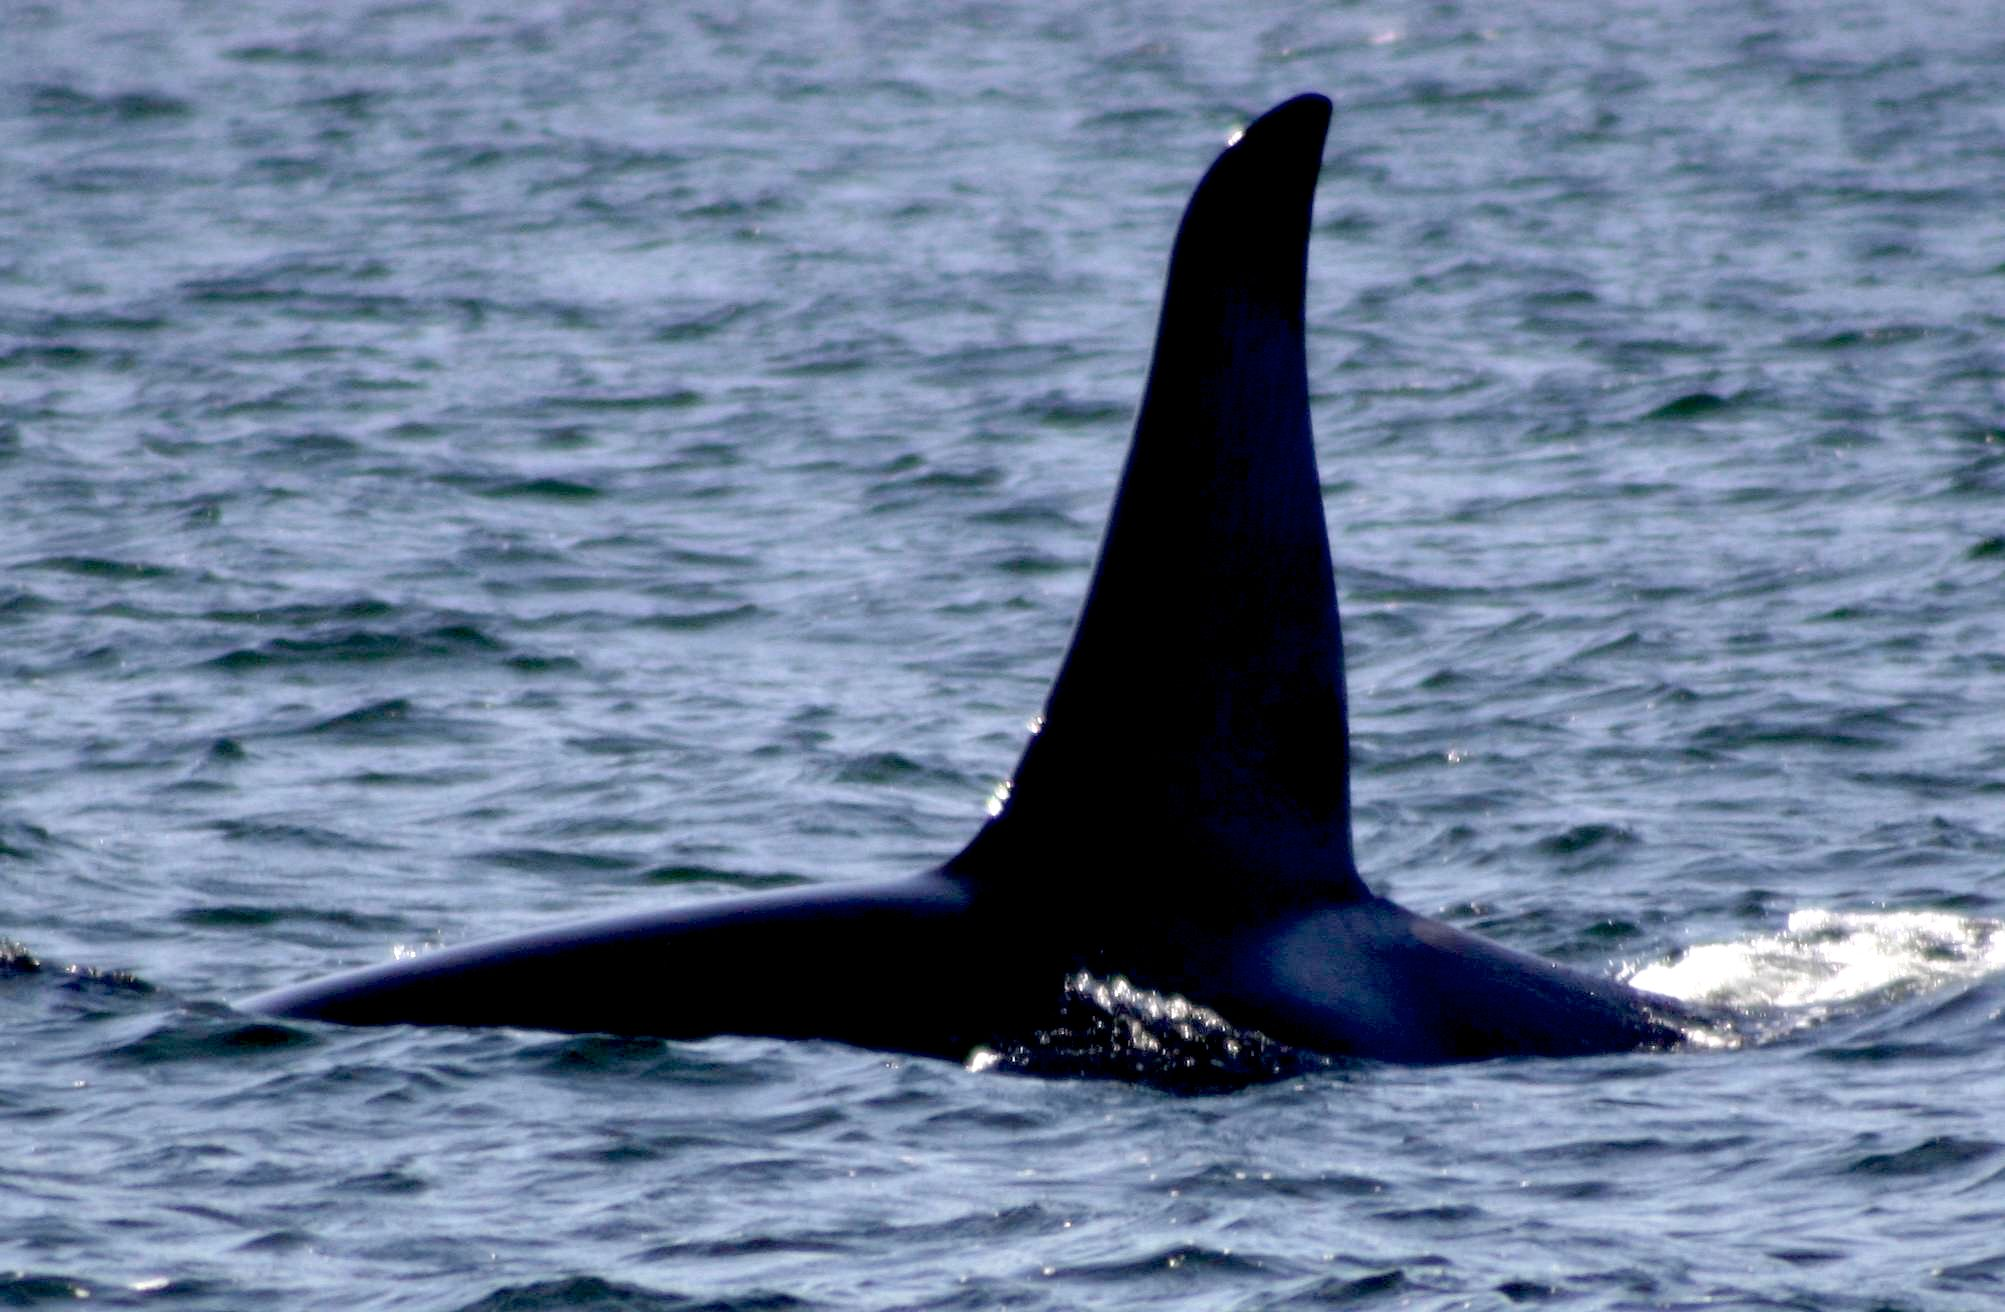 Feds sued over failure to protect killer whales